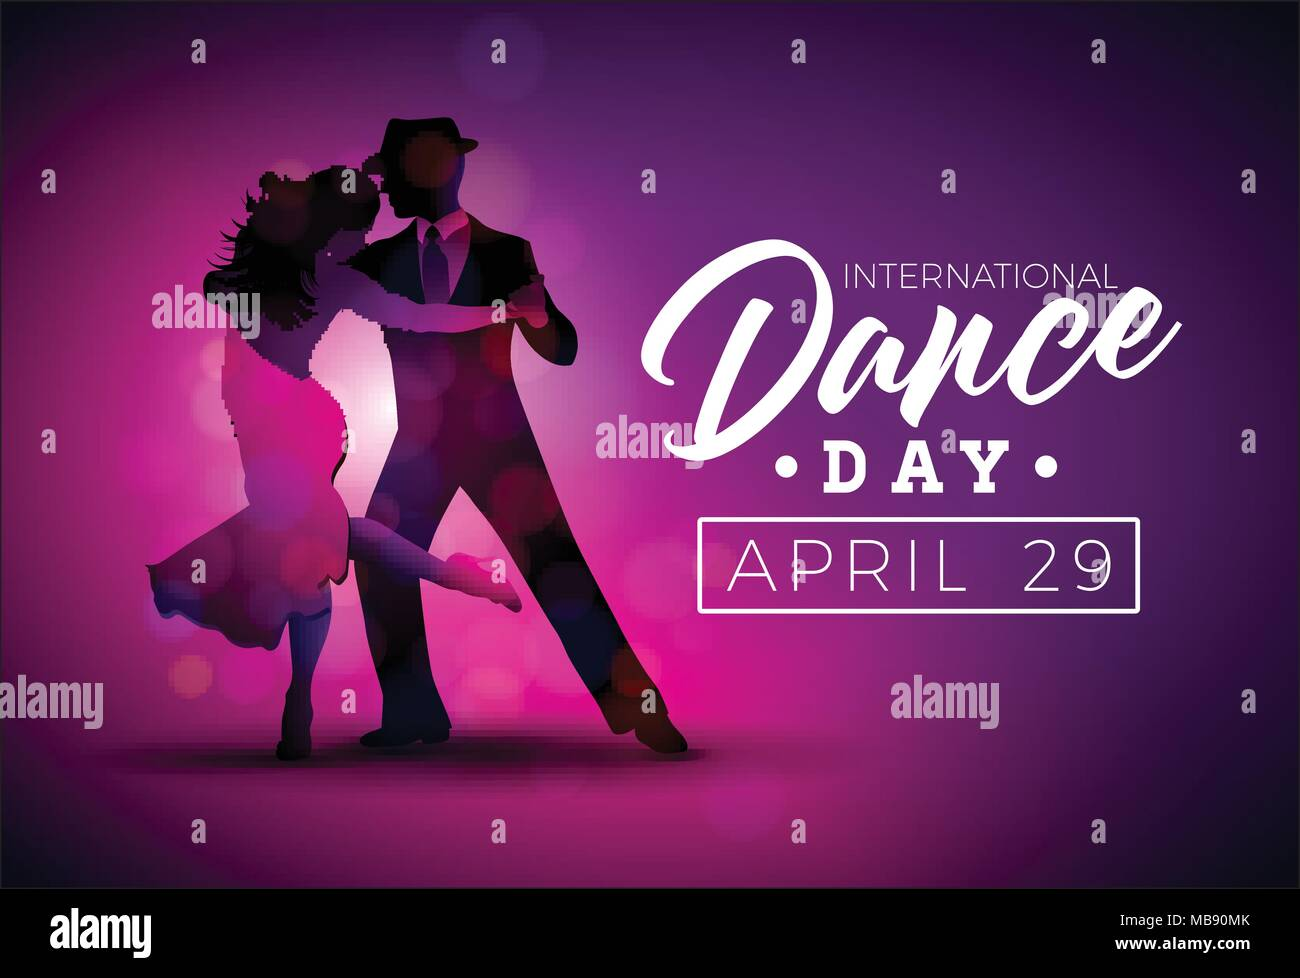 International Dance Day Vector Illustration With Tango Dancing Couple On Purple Background Design Template For Banner Flyer Invitation Brochure Poster Or Greeting Card Stock Vector Image Art Alamy